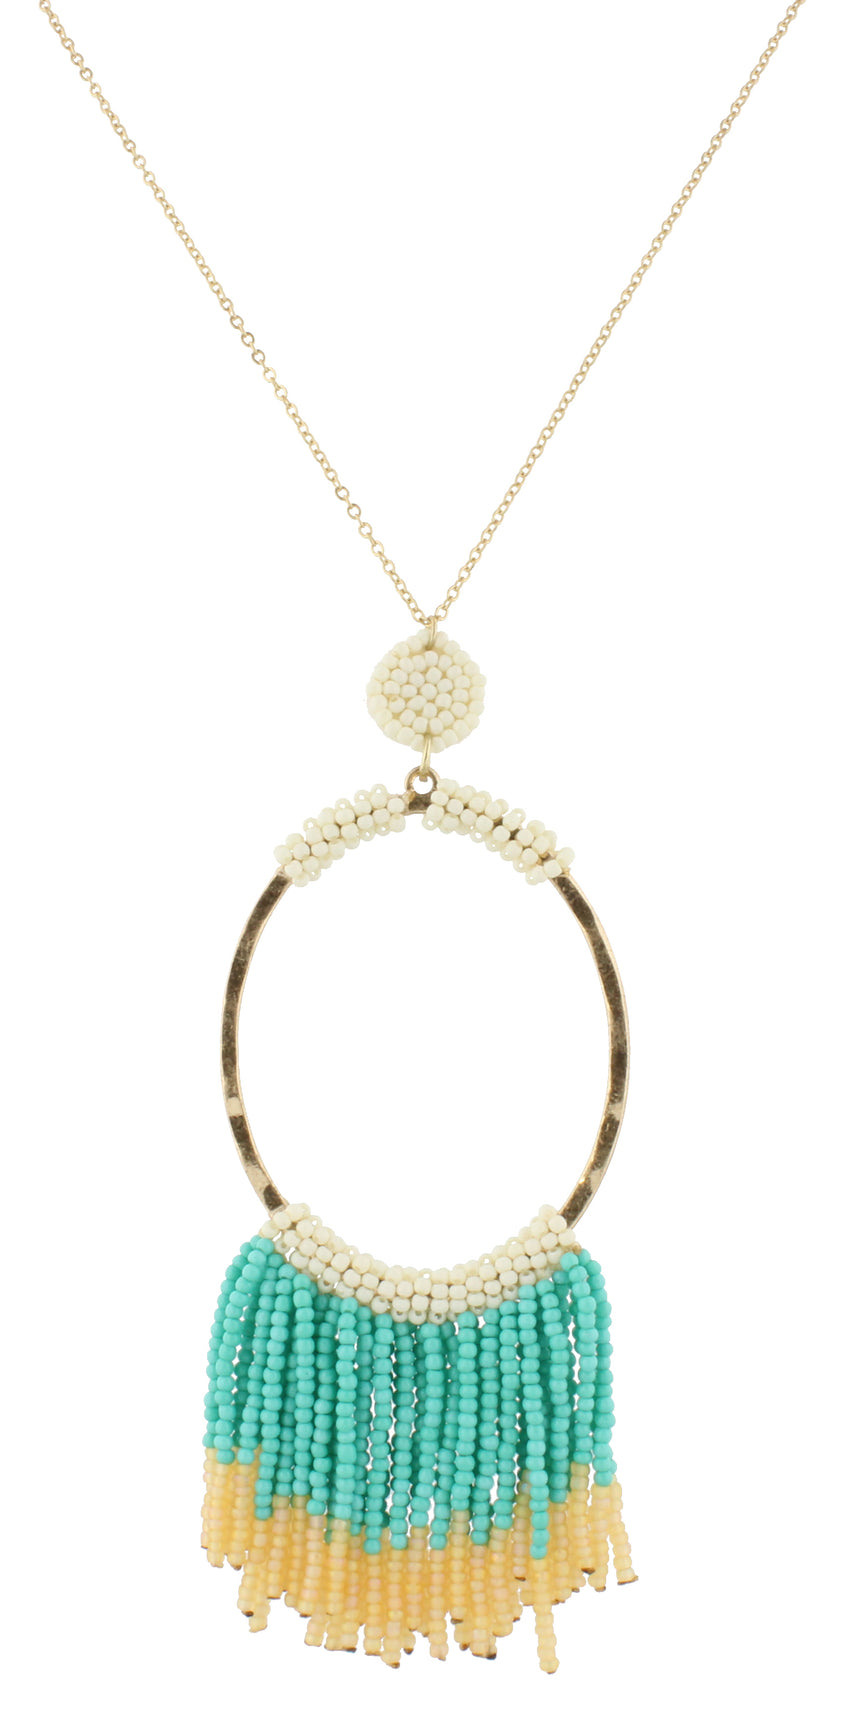 Gentry Necklace - Turquoise & Ivory Beaded Oval